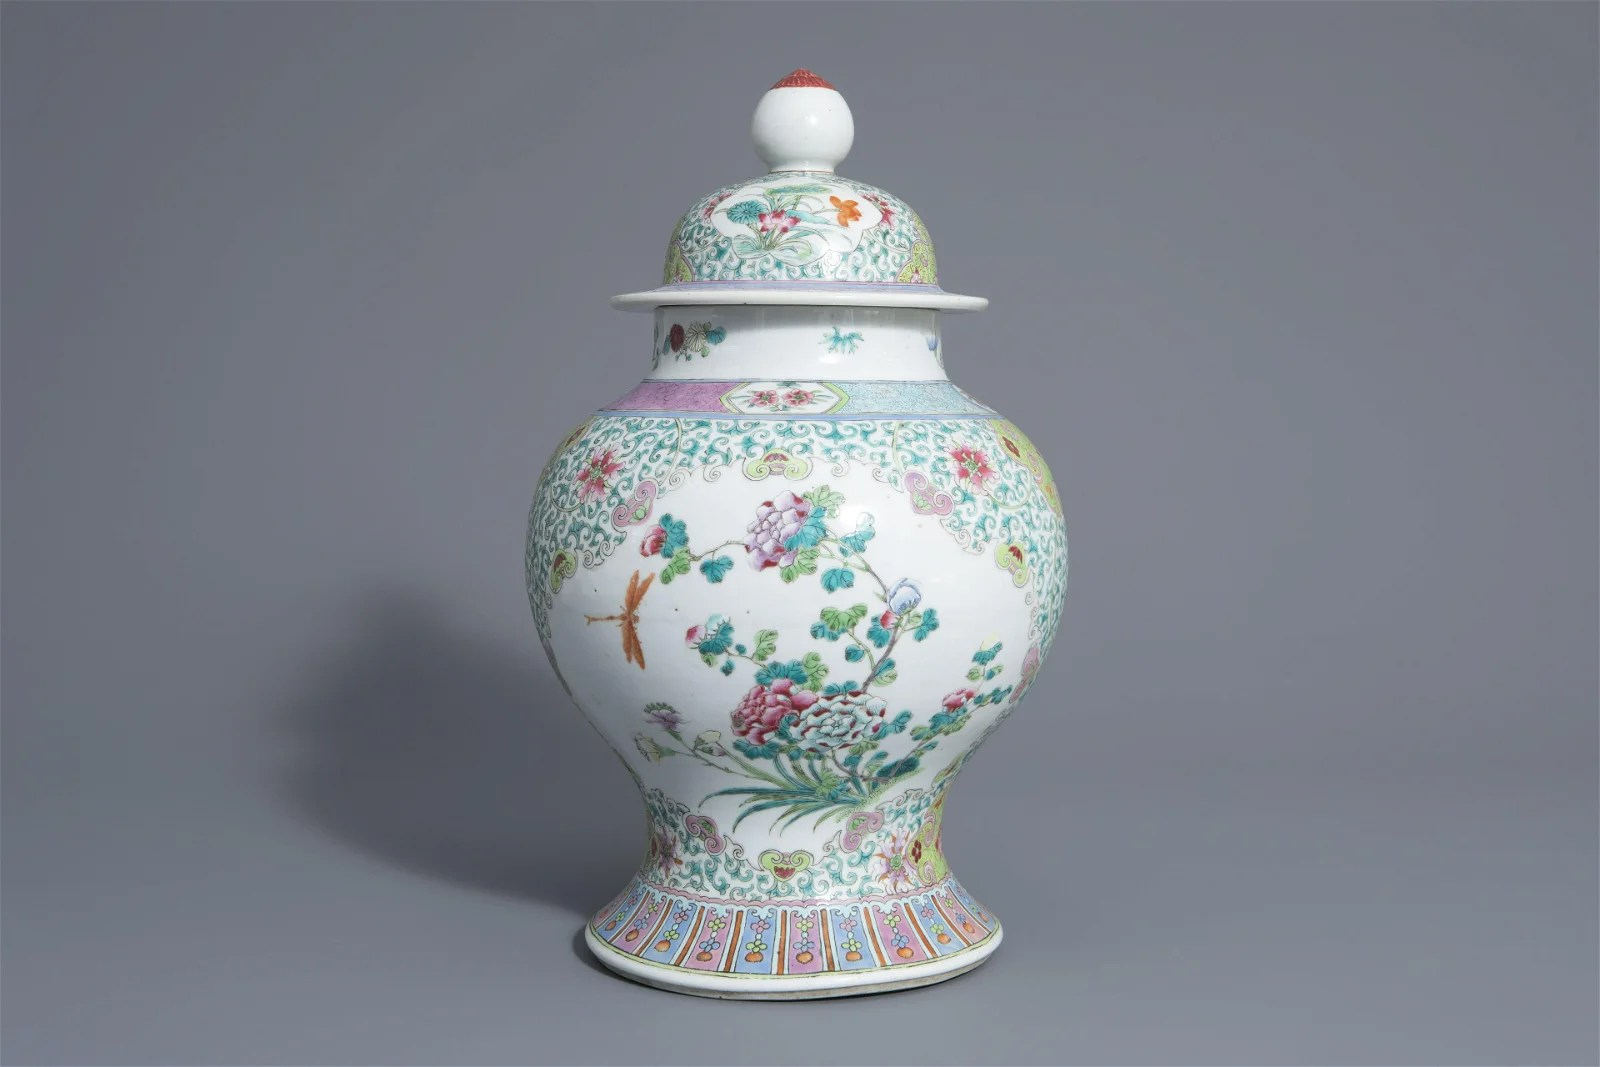 A Chinese famille rose vase and cover with floral